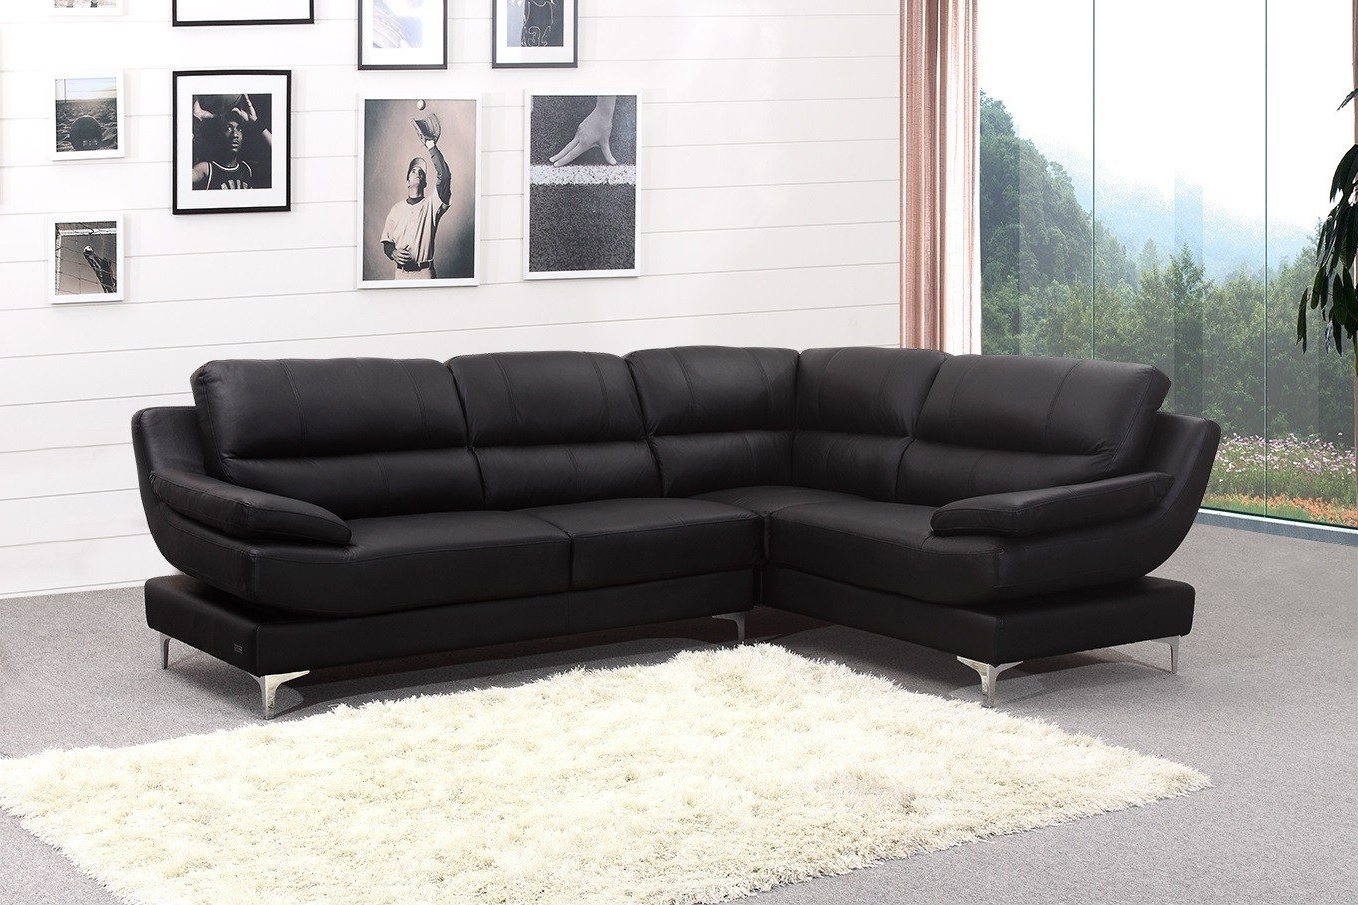 Leather Corner Sofas Within Well Known New Ideas Leather Corner Sofas With Corner Sofa Leather Brown (View 12 of 20)